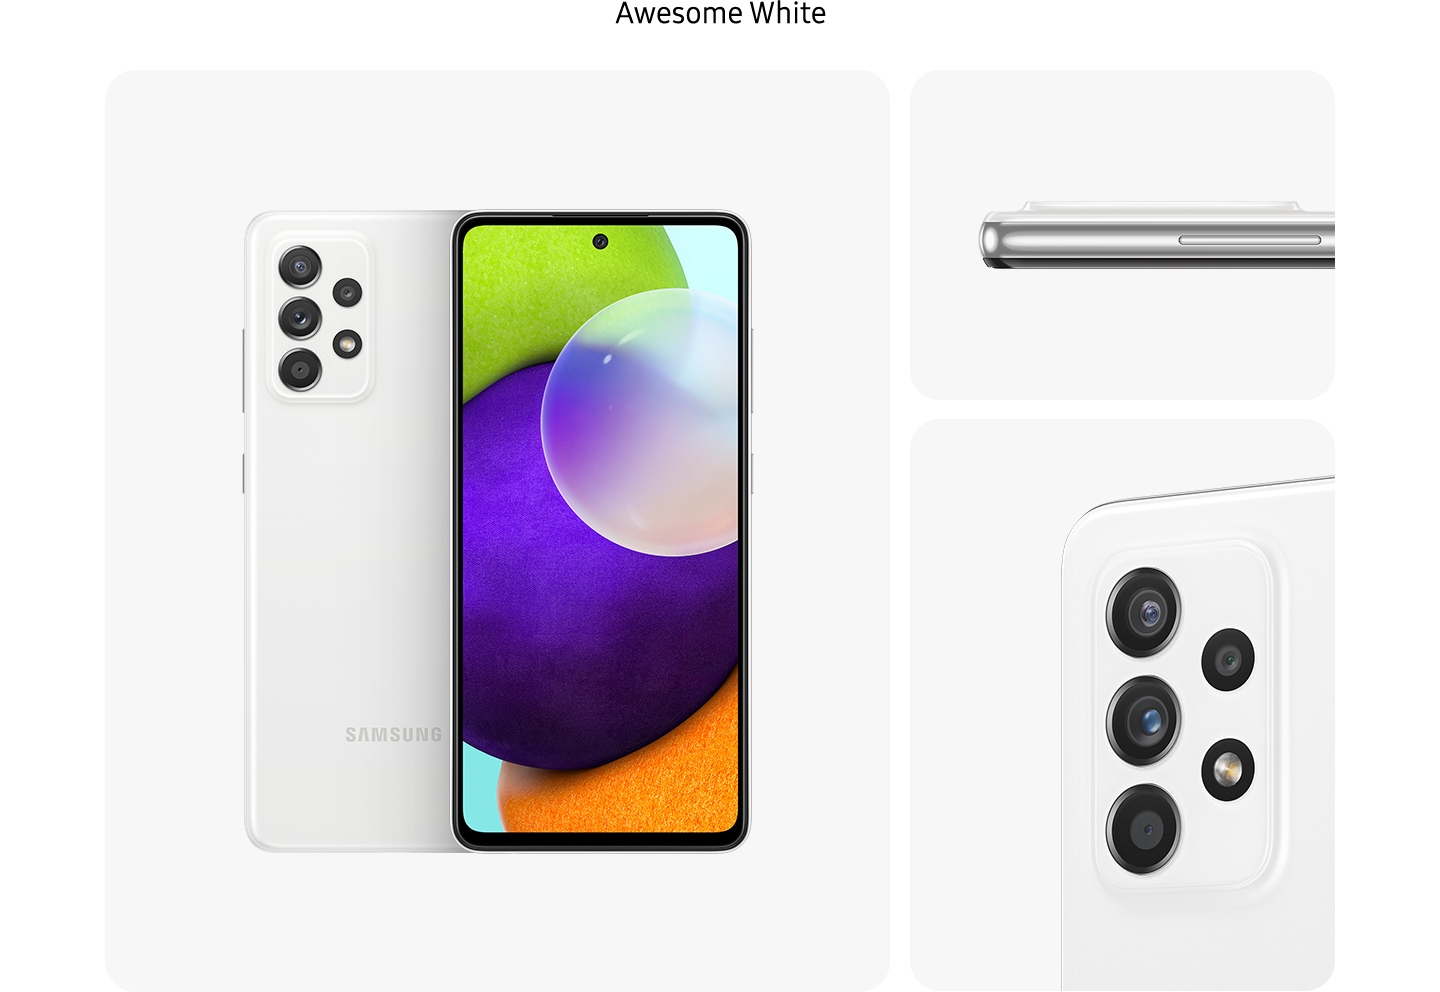 White Galaxy A52 in Awesome White, seen from multiple angles to show the design: rear, front, side and close-up on the rear camera. 4. Blue Galaxy A52 in Awesome Blue, seen from multiple angles to show the design: rear, front, side and close-up on the rear camera.